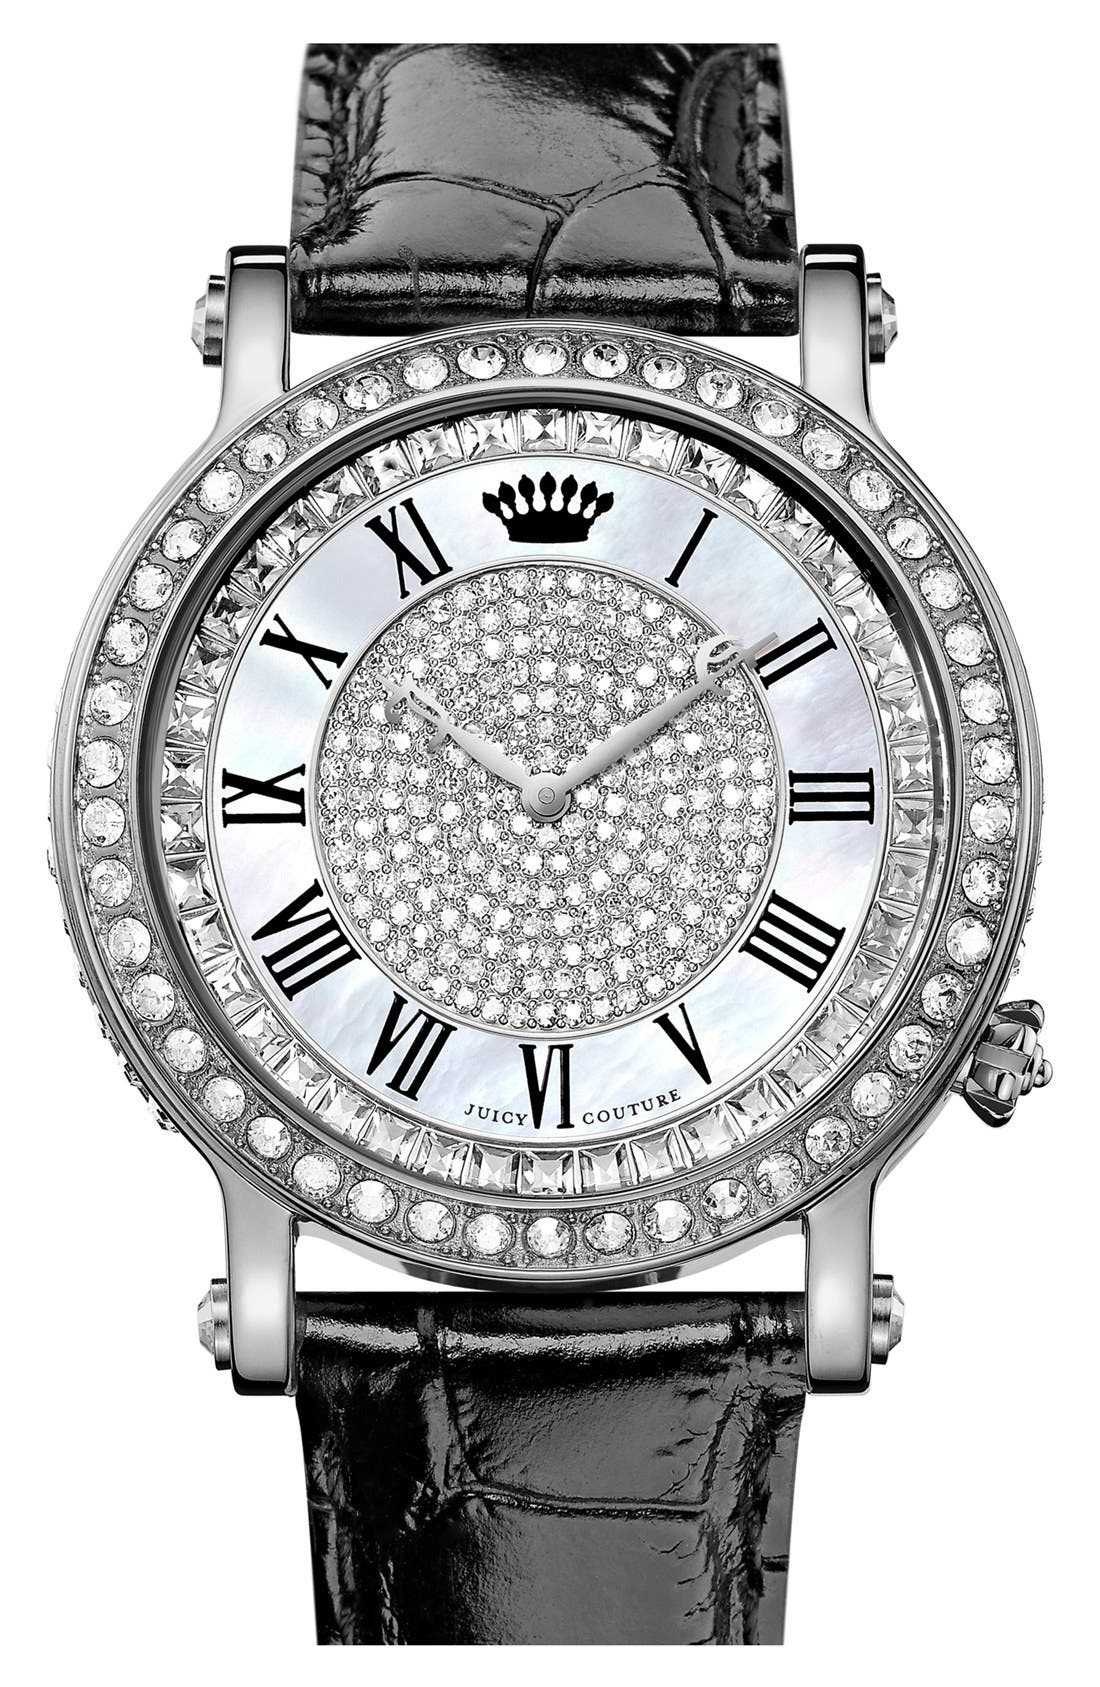 Main Image - Juicy Couture 'Queen Couture' Leather Strap Watch, 42mm